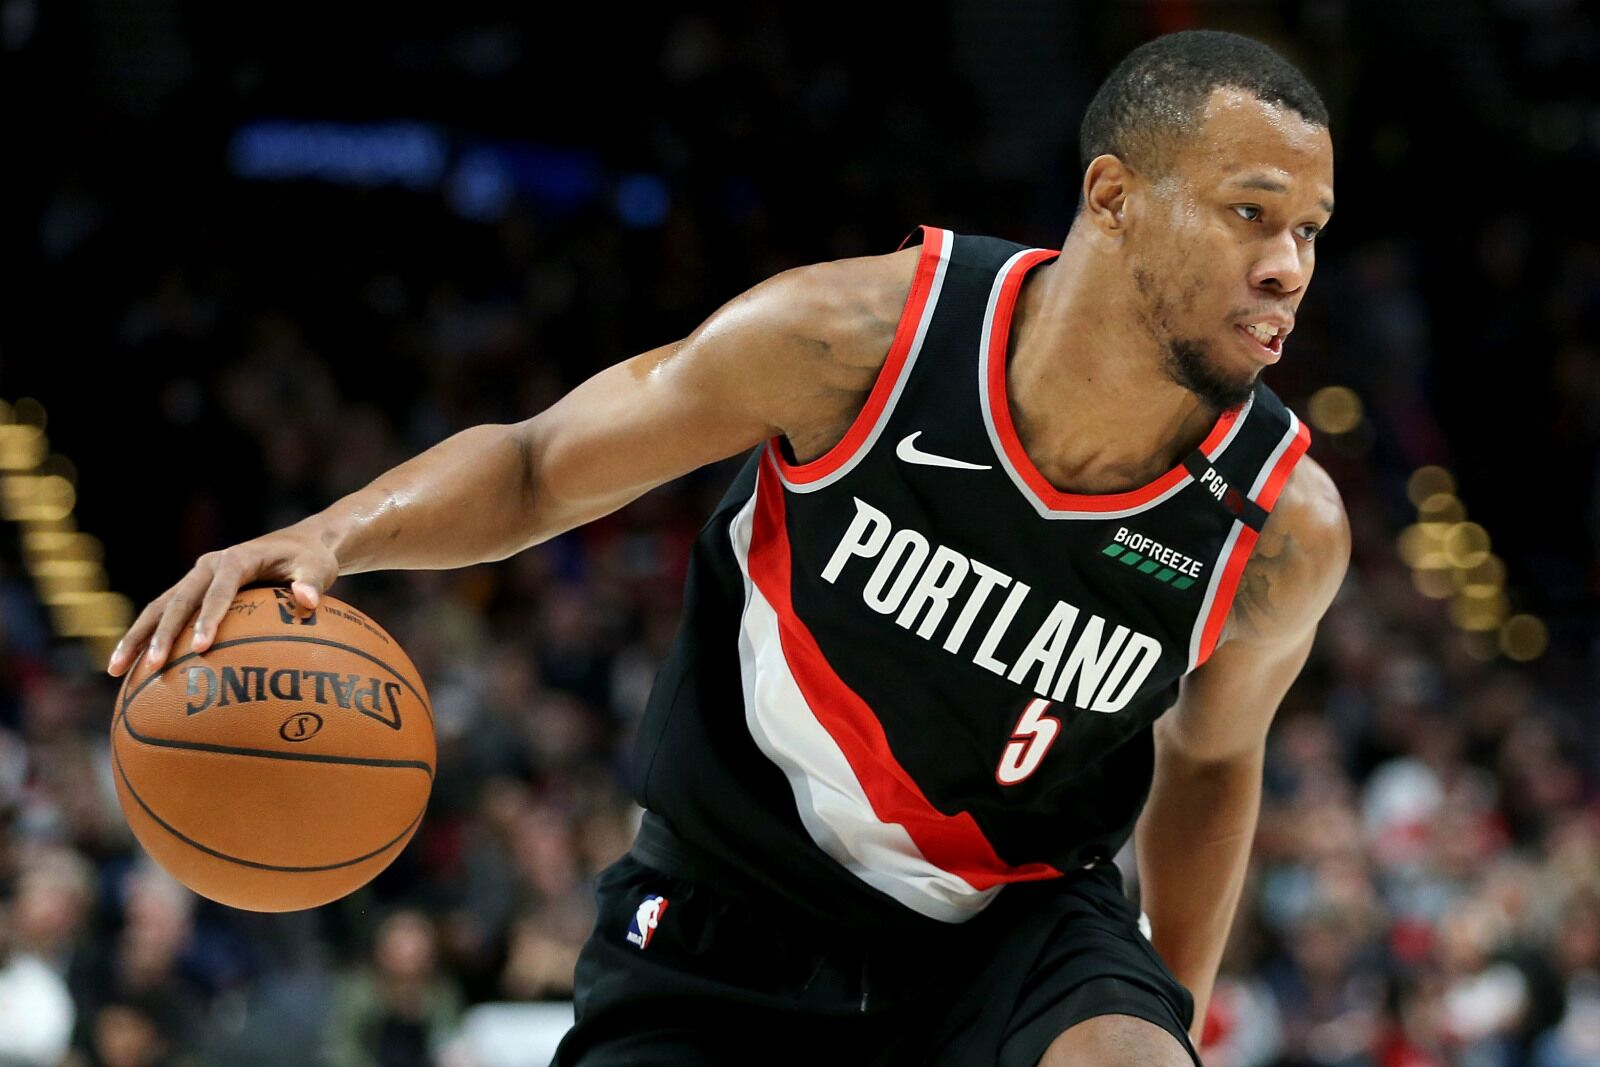 """Ben Golliver on Portland Trail Blazers Acquisitions: They're Taking """"Buying Low to a Whole New Level"""""""